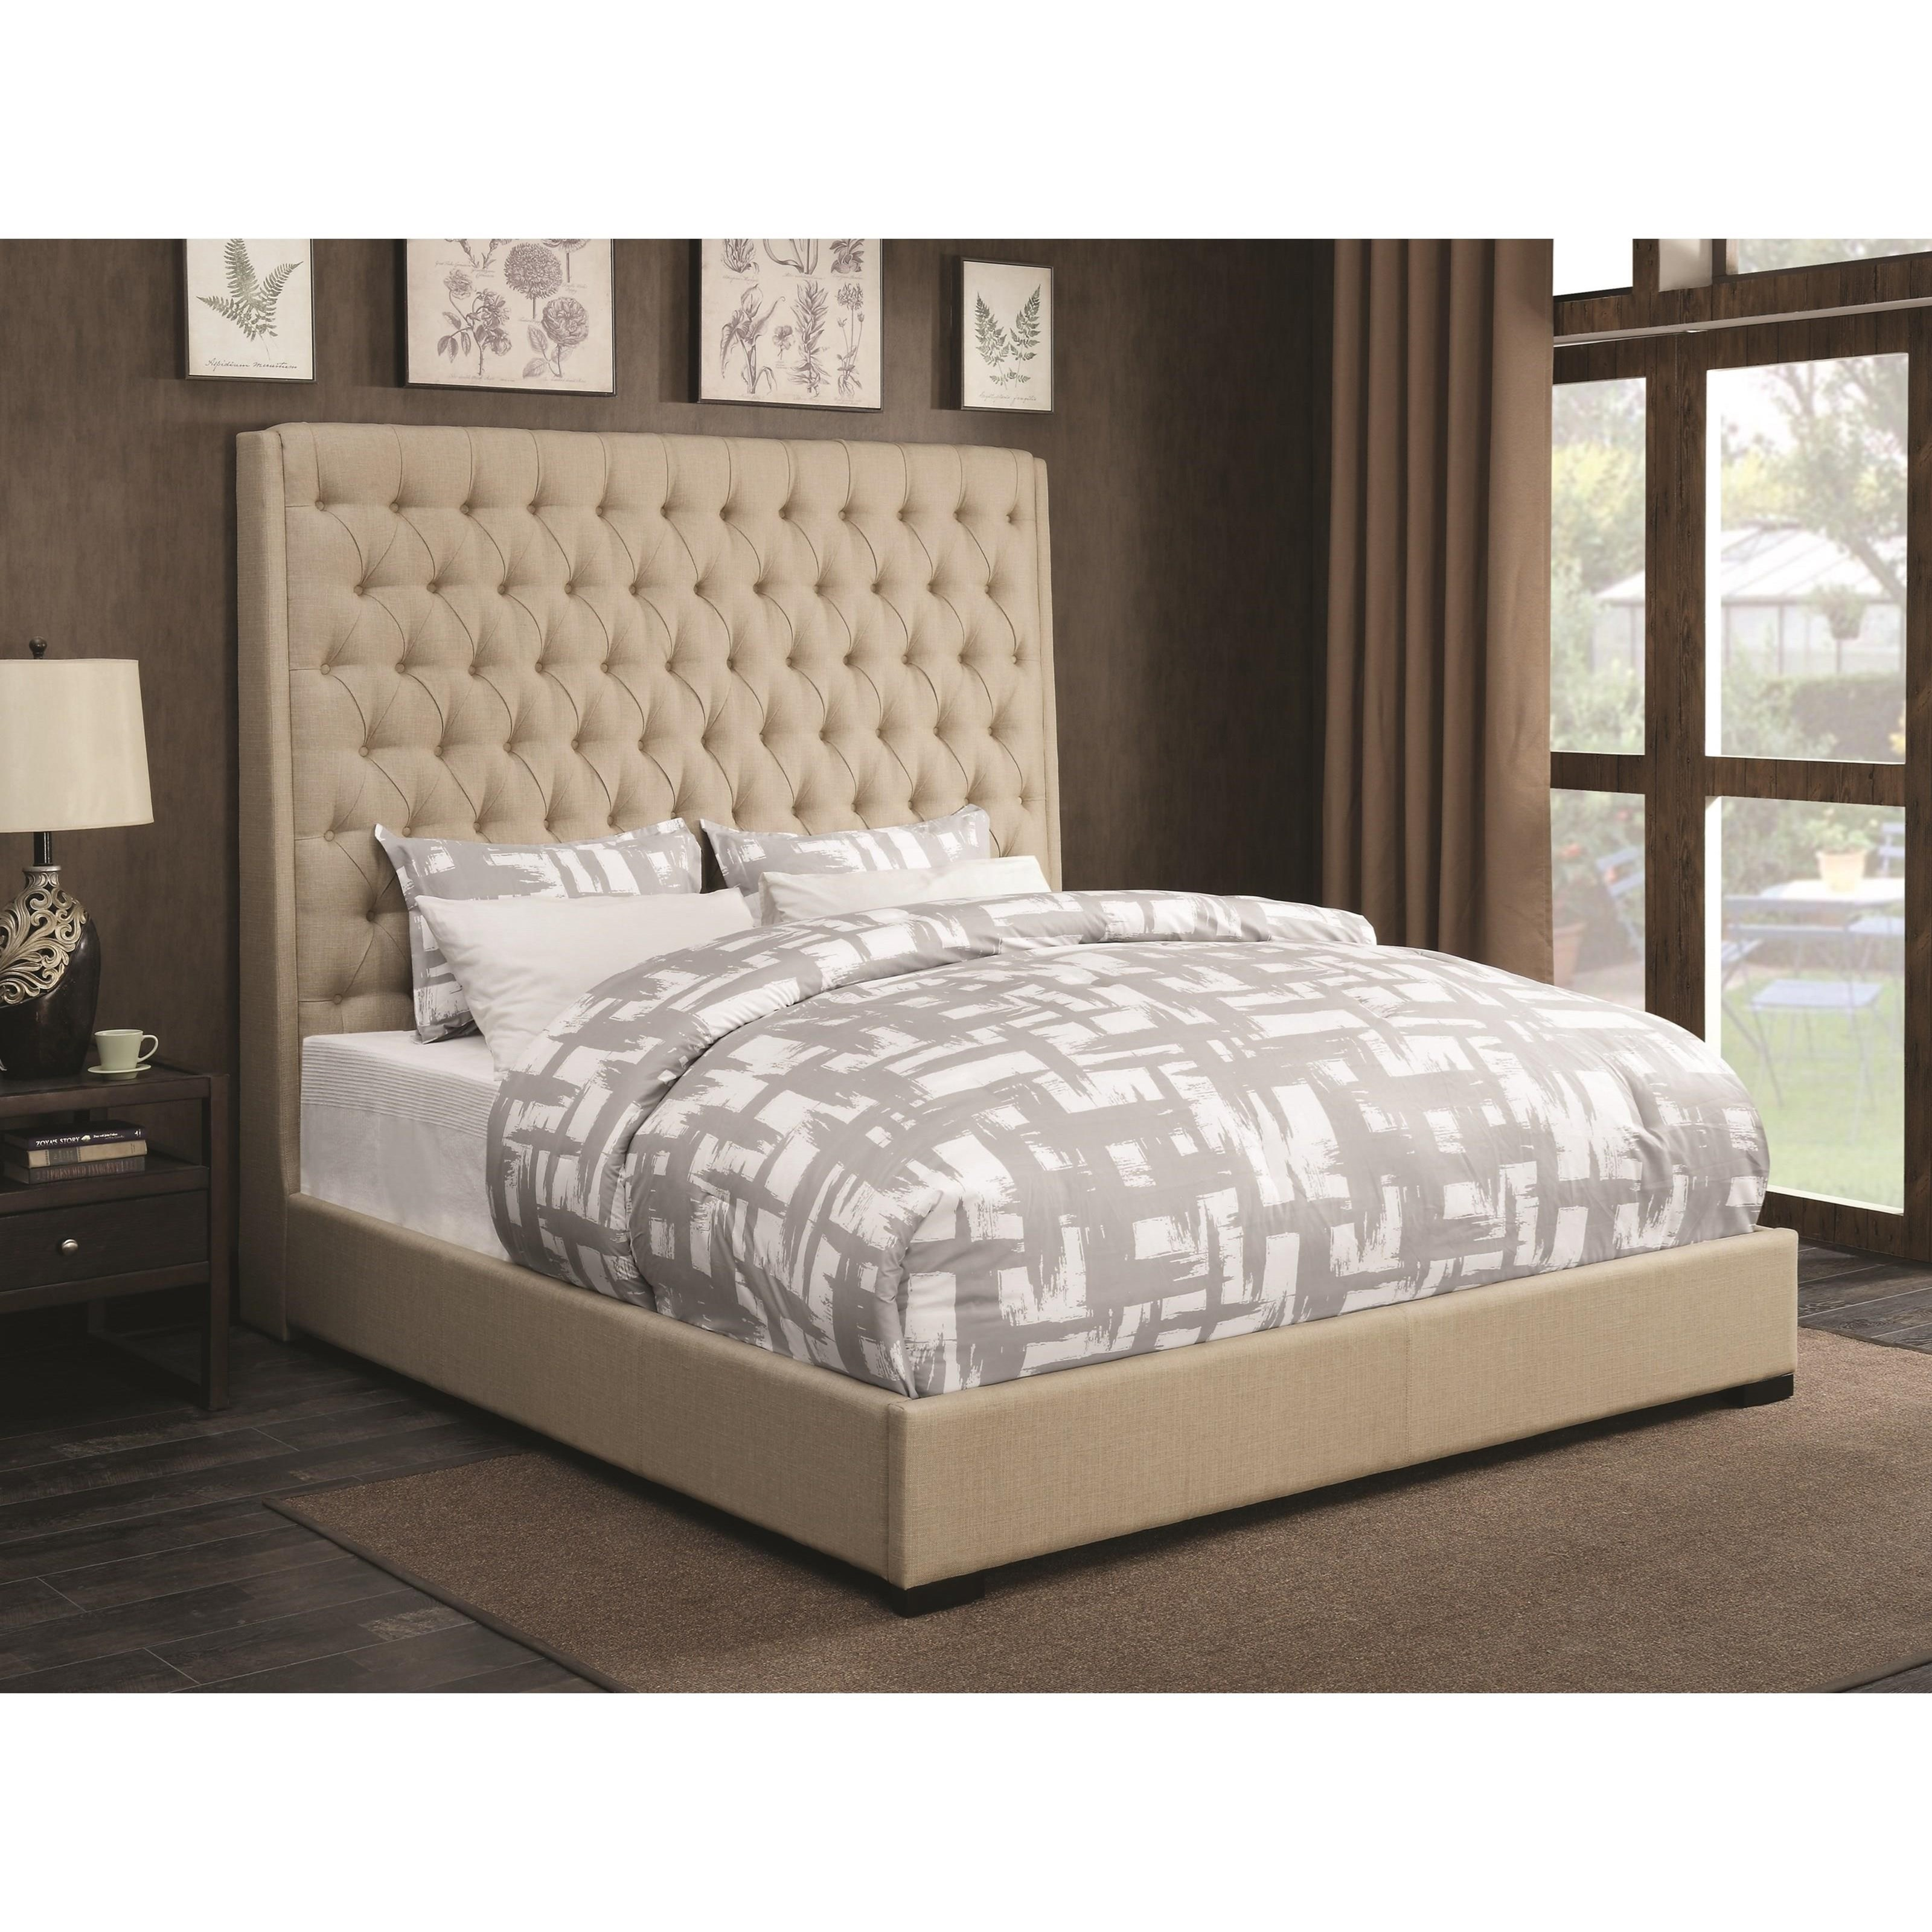 Coaster Upholstered Beds Upholstered California King Bed With Diamond Tufting A1 Furniture Mattress Upholstered Beds